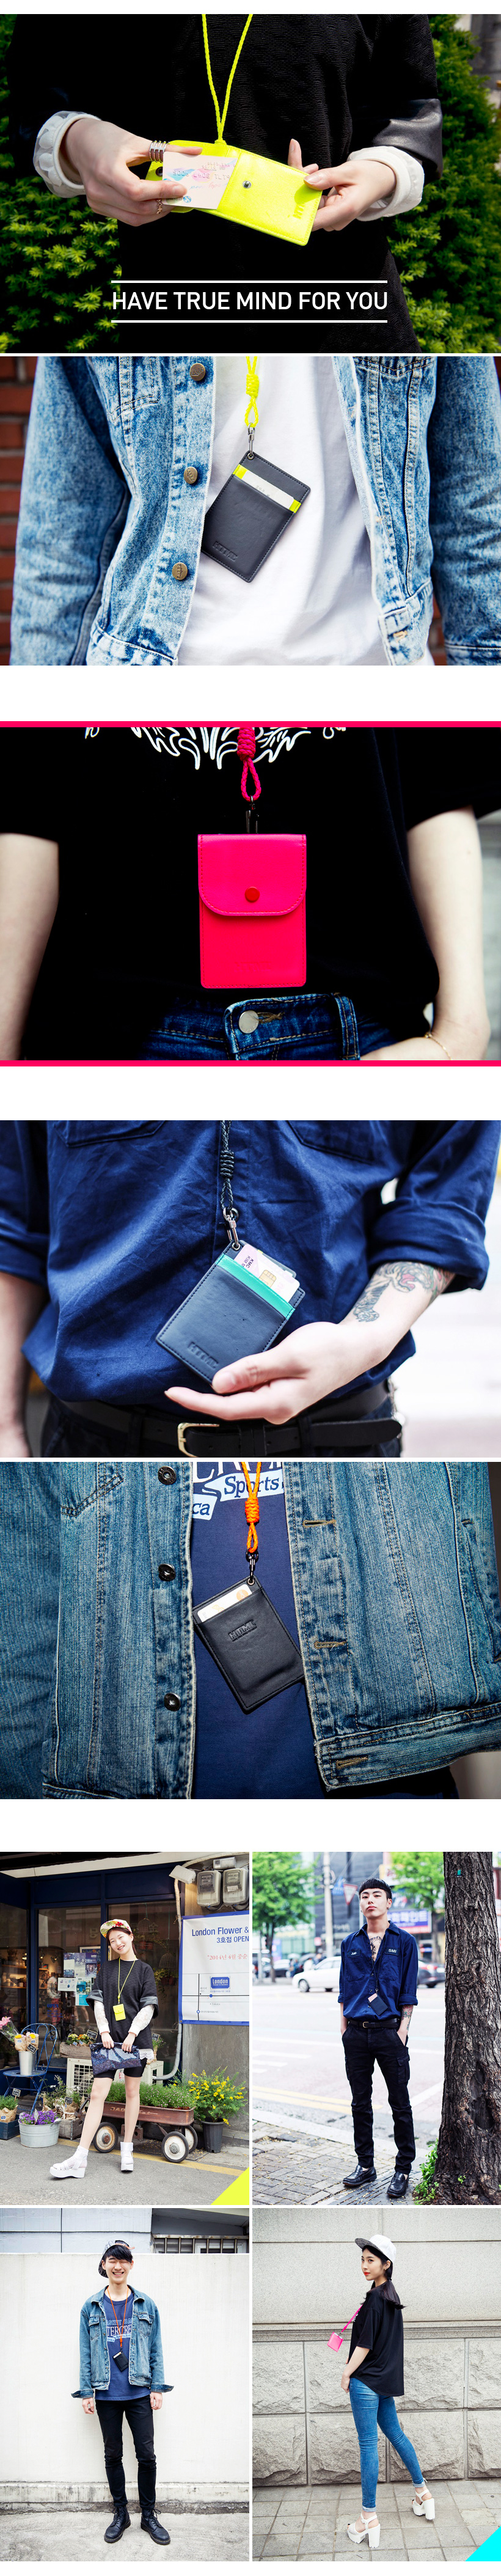 [에이치티엠엘]HTML- Basic Card Holder (NAVY)